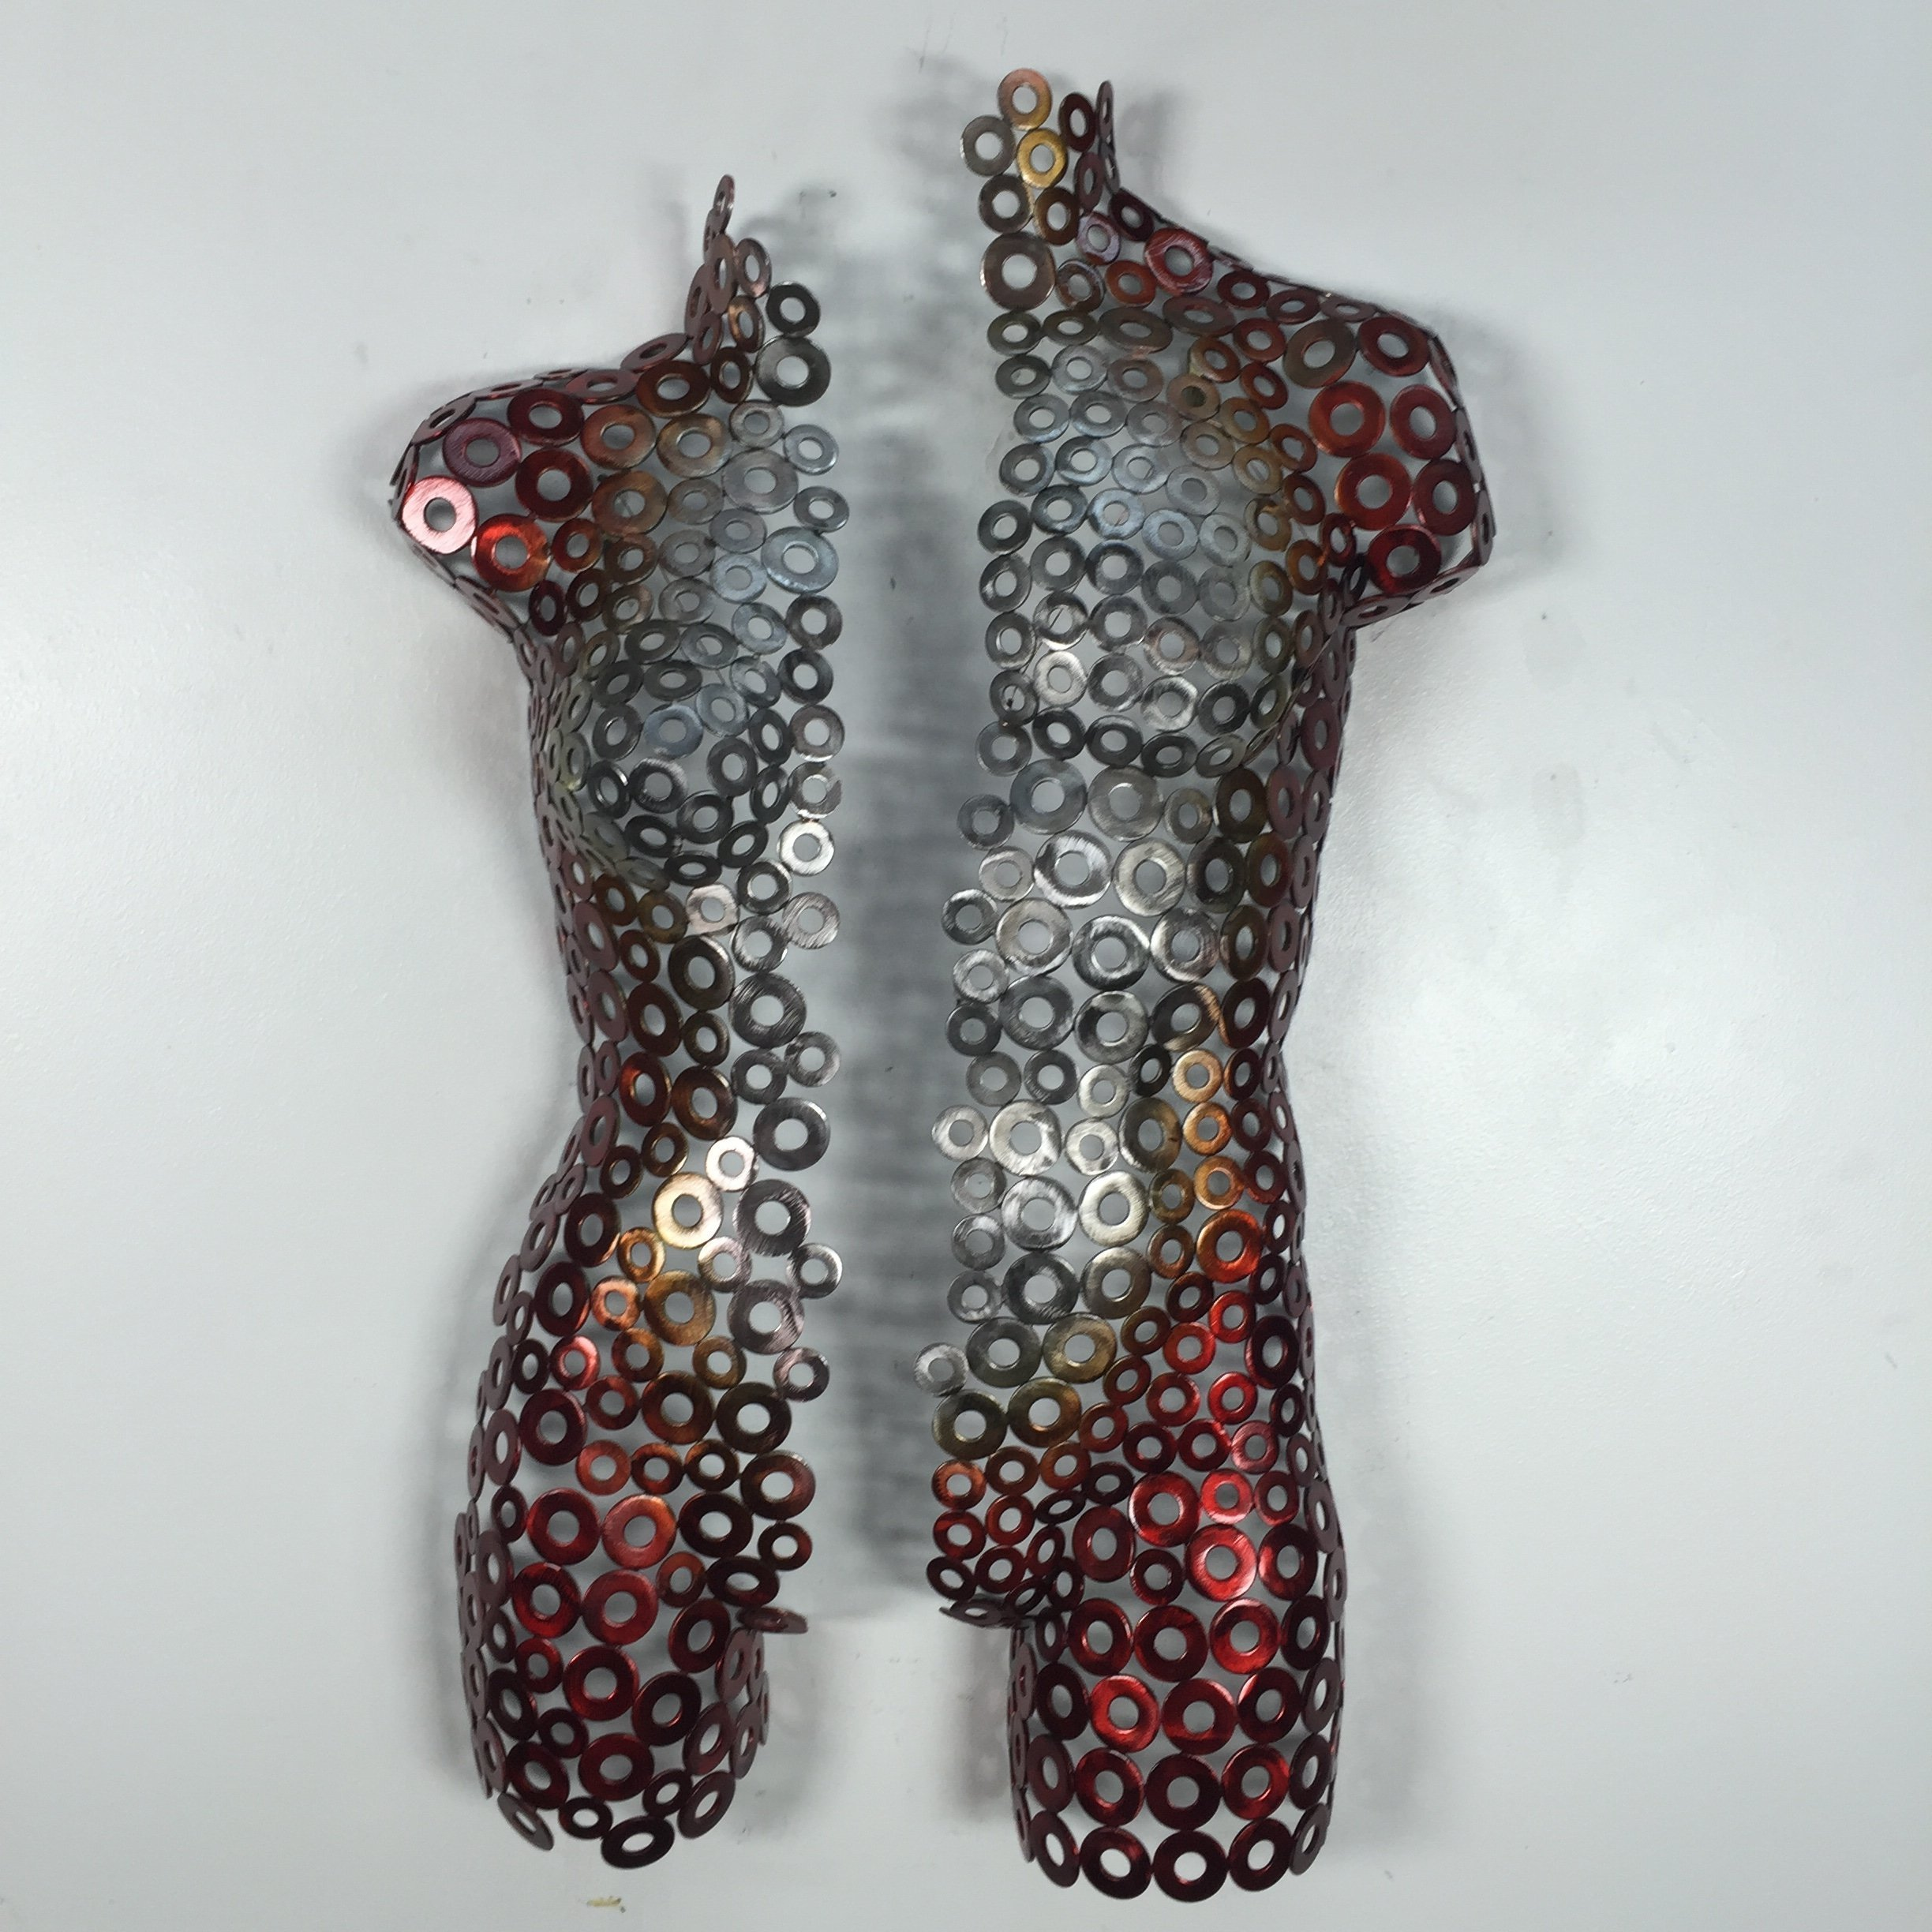 Metal wall art torso abstract sculpture silver red garden modern by Holly Lentz